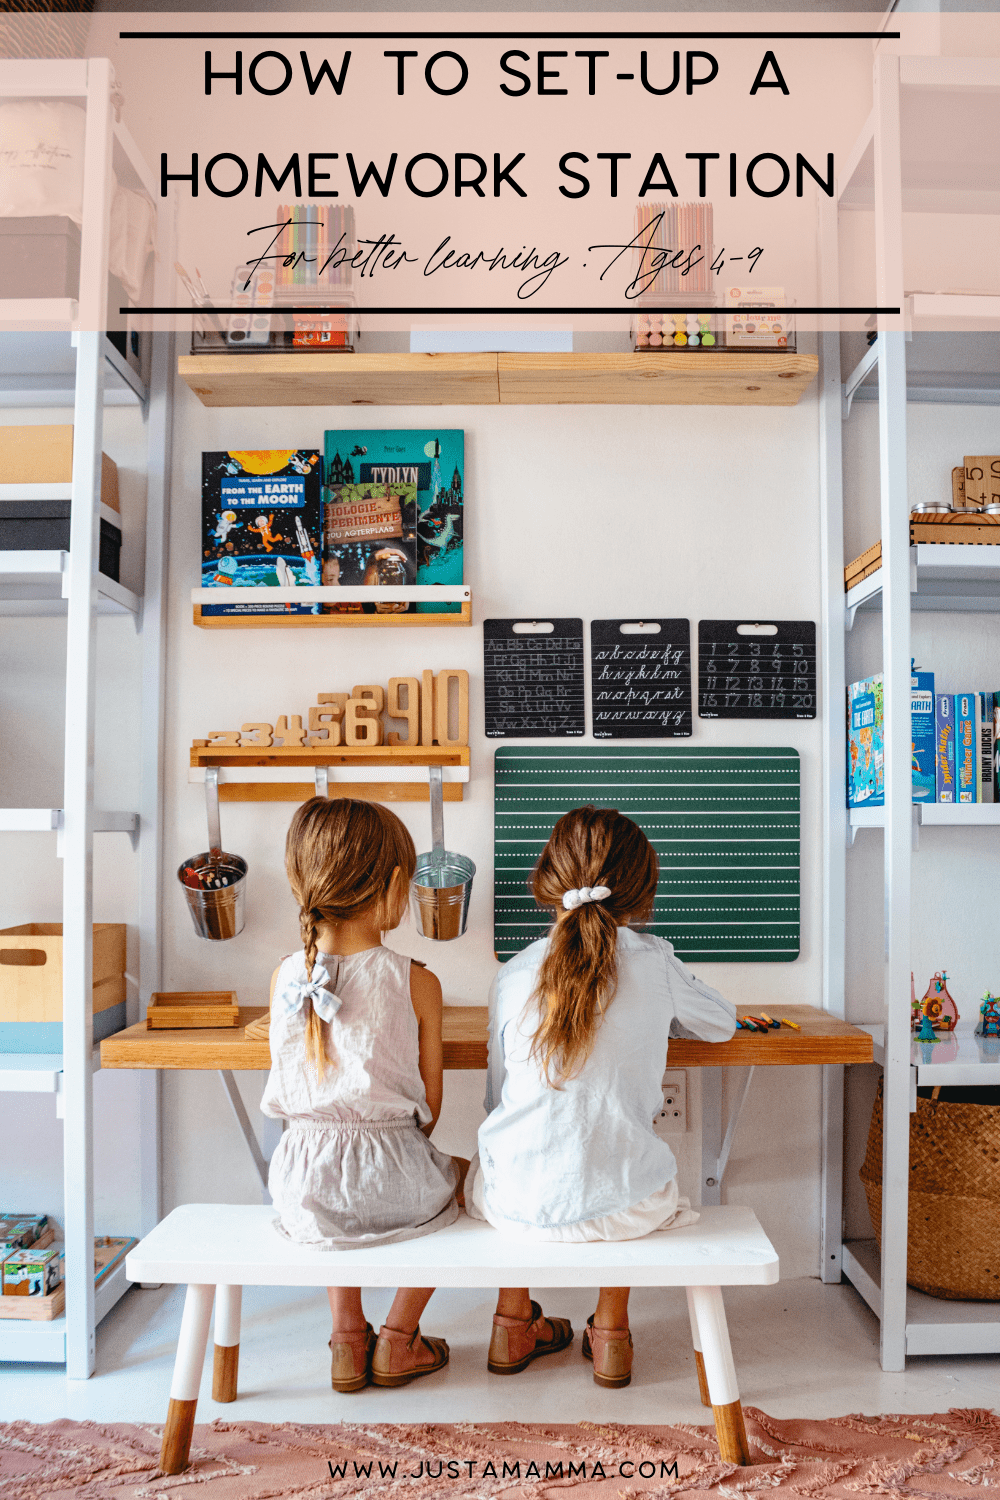 How To Set Up A Homework Station For Better Learning 1